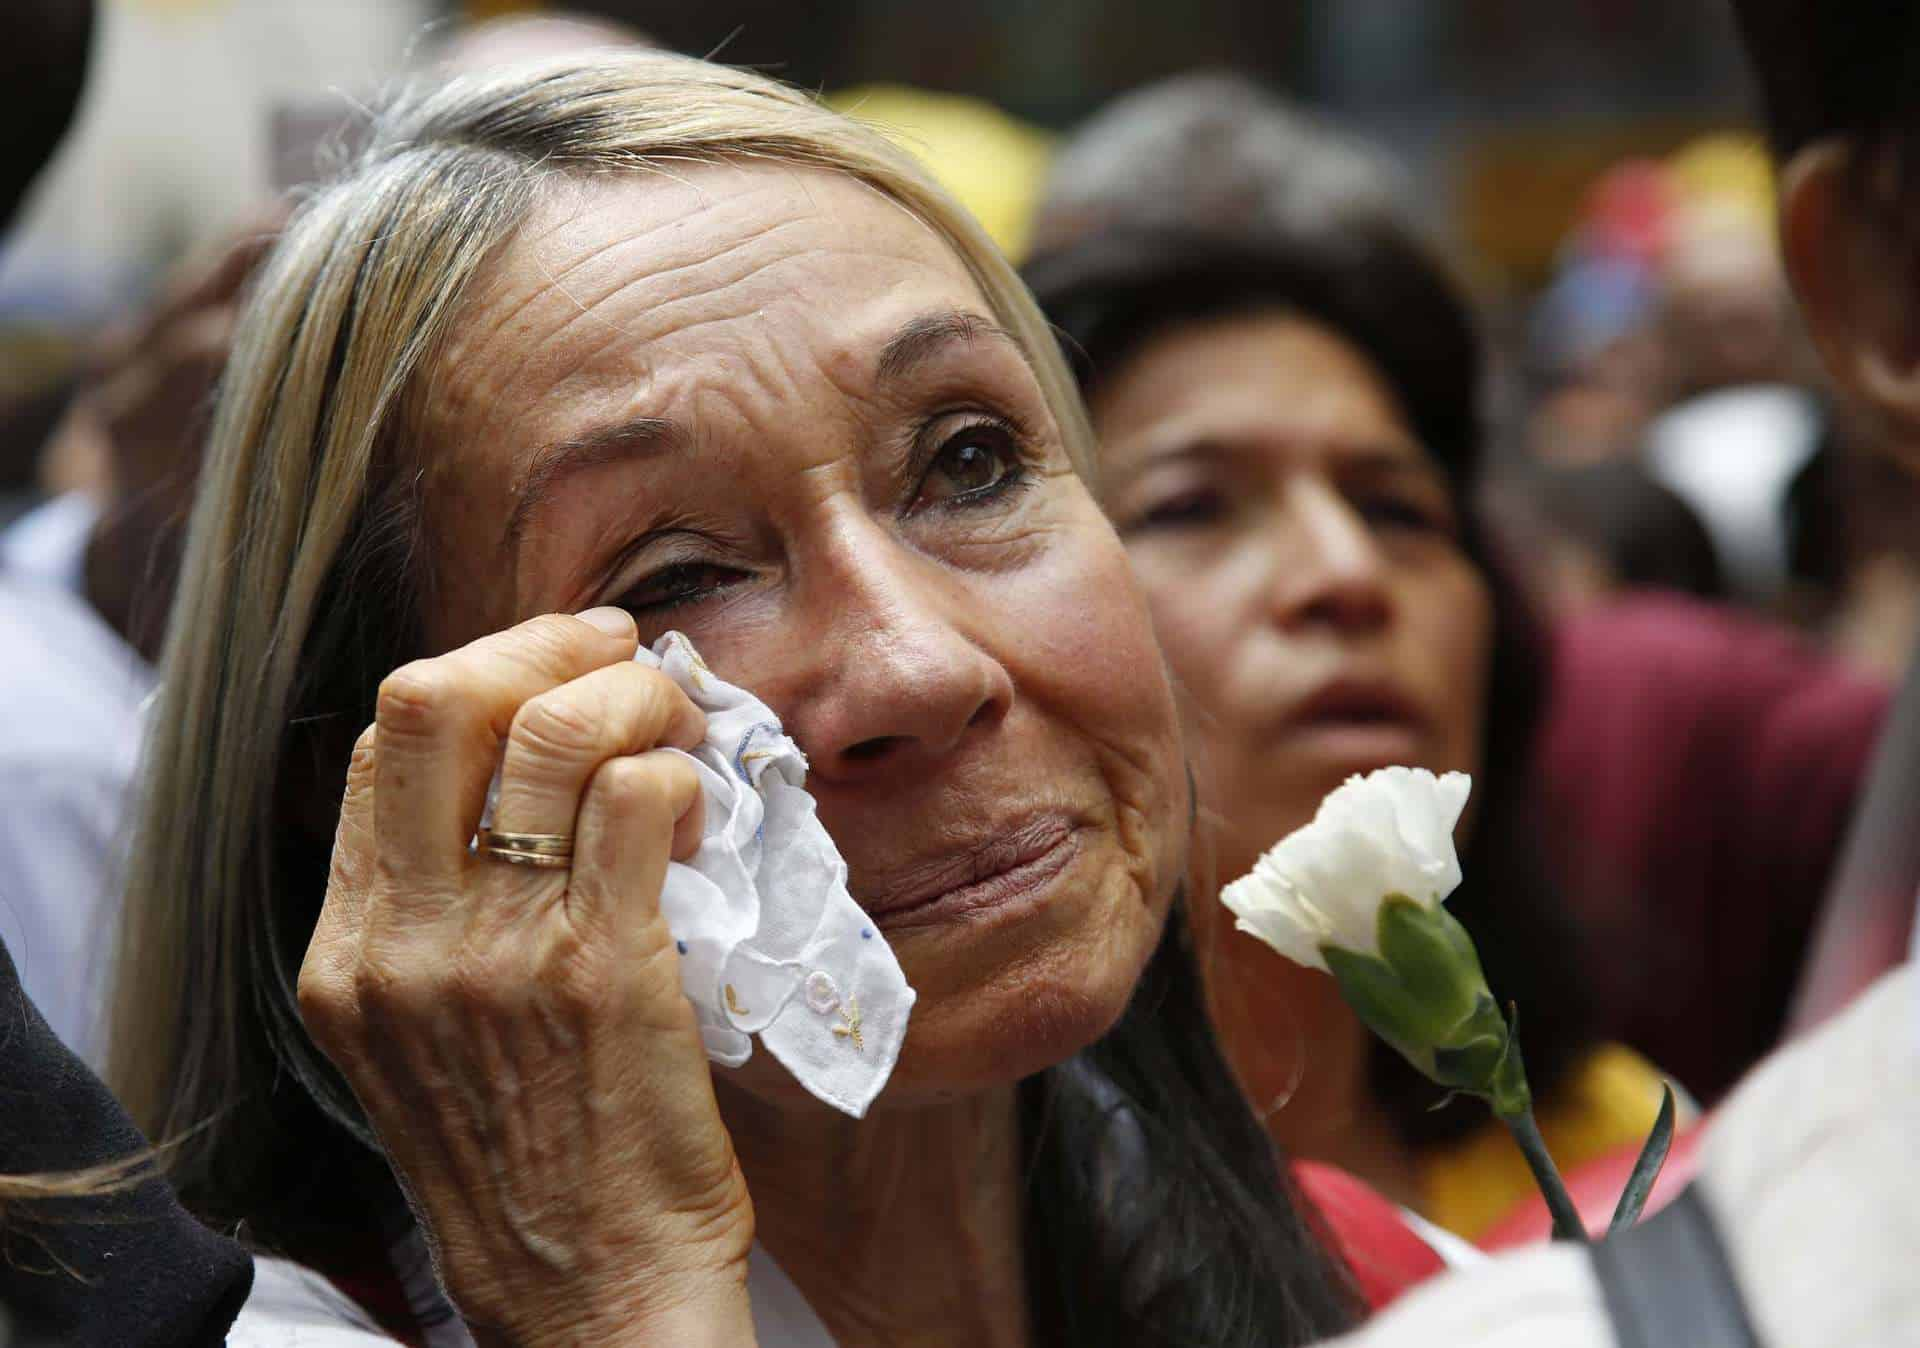 A woman cries as she watches a live broadcast from Havana of the ceremony of the agreement between Colombian president and the head of FARC rebels on a cease-fire and rebel disarmament deal, in Bogota, Colombia, Thursday, June 23, 2016. The deal moves the country closer to the end of a 52-year war that has left more than 220,000 people dead. (AP Photo/Fernando Vergara)